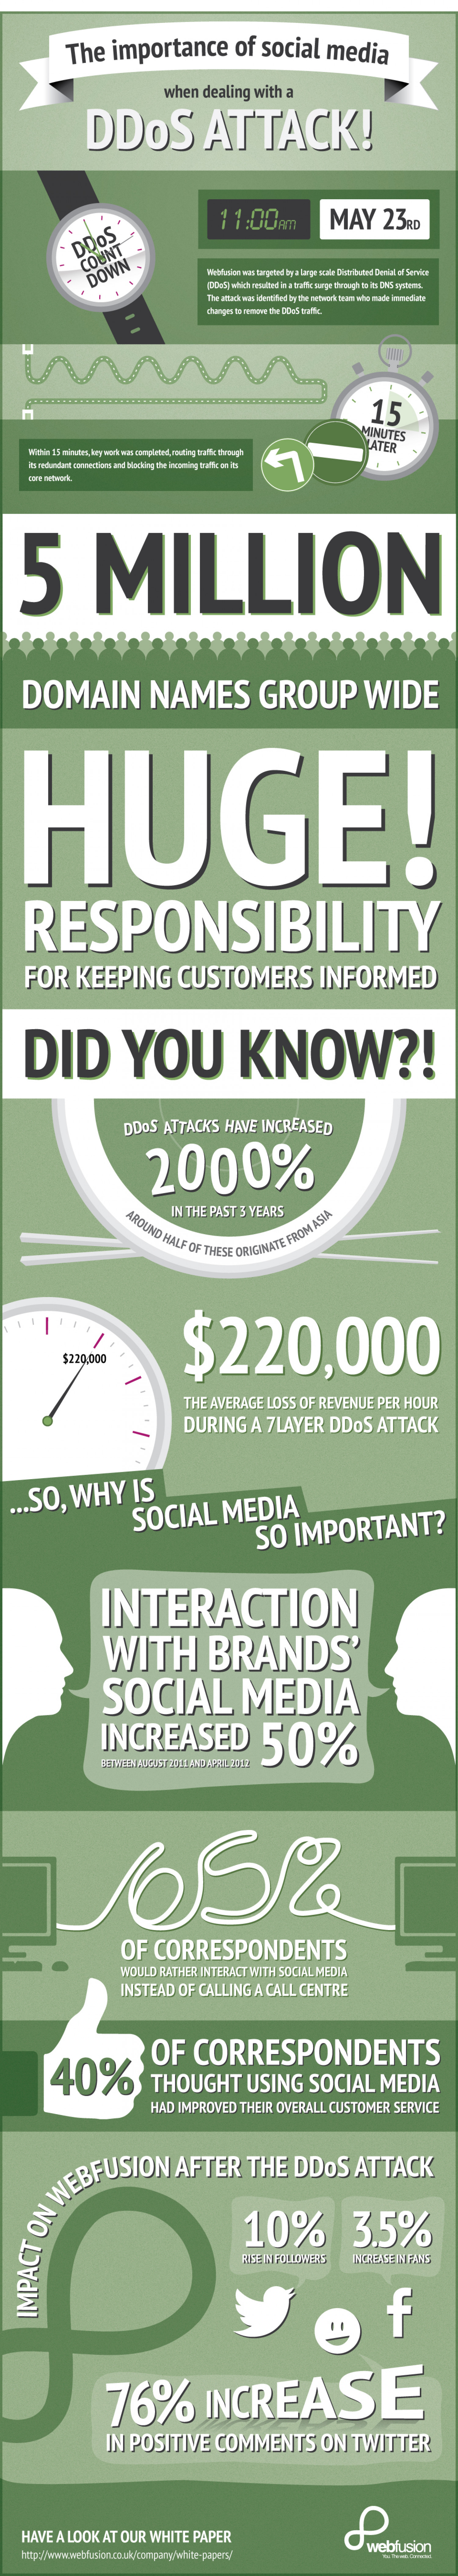 The Importance of Social Media When Dealing With a DDos Attack! Infographic